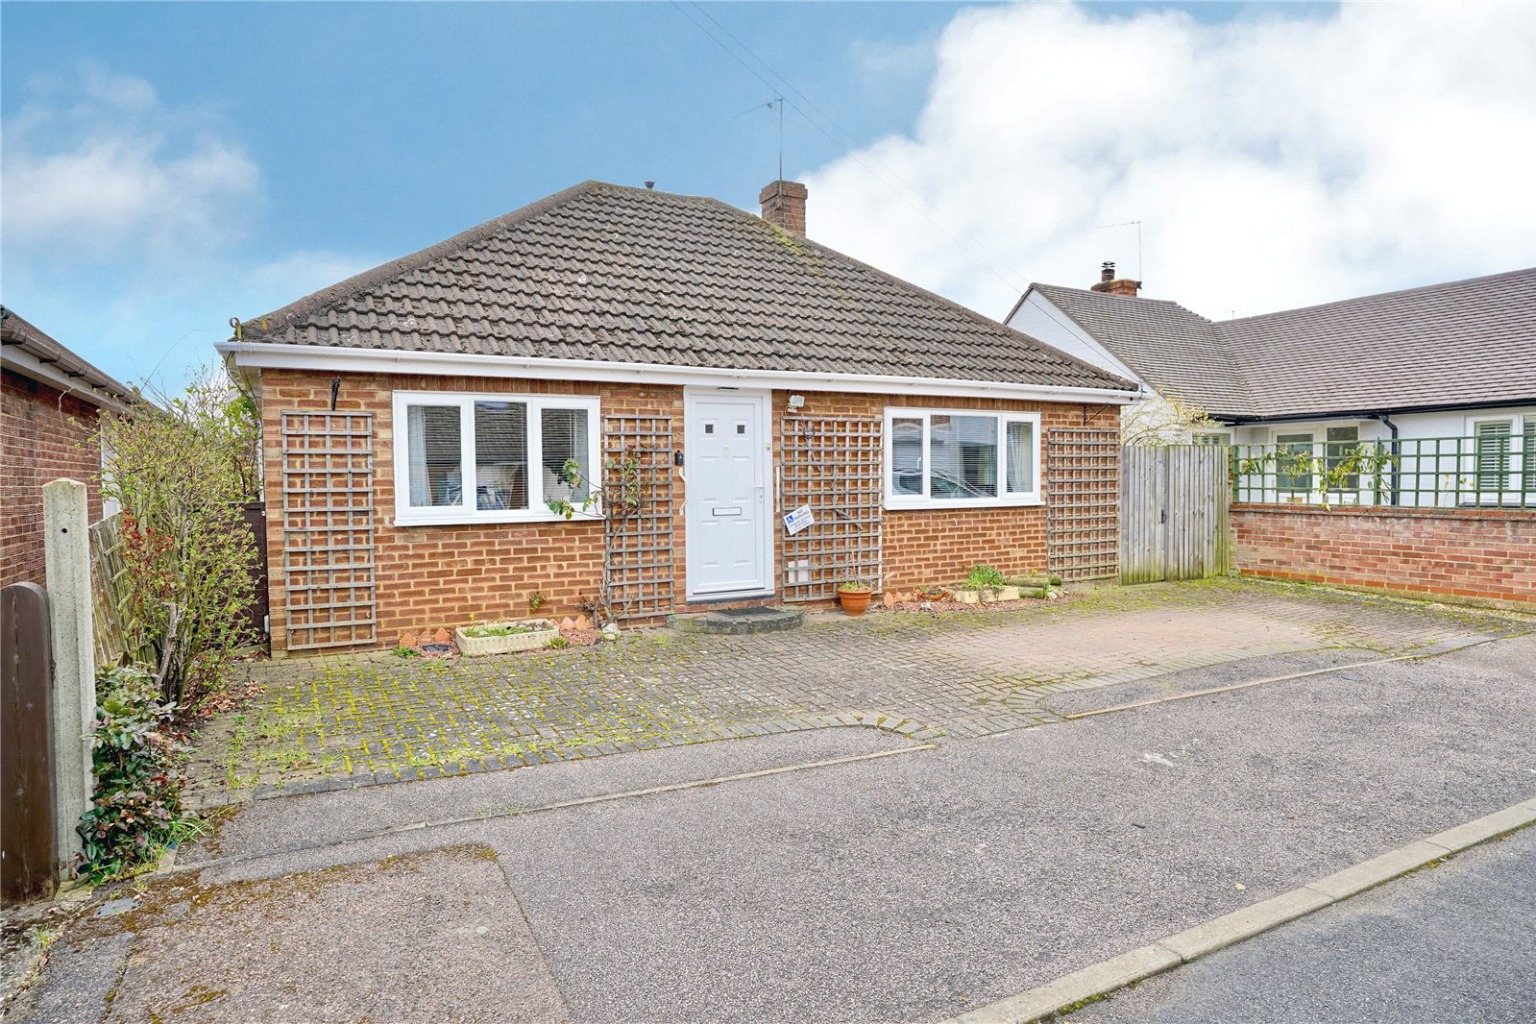 2 bed detached bungalow for sale in Parkway, St. Neots  - Property Image 1